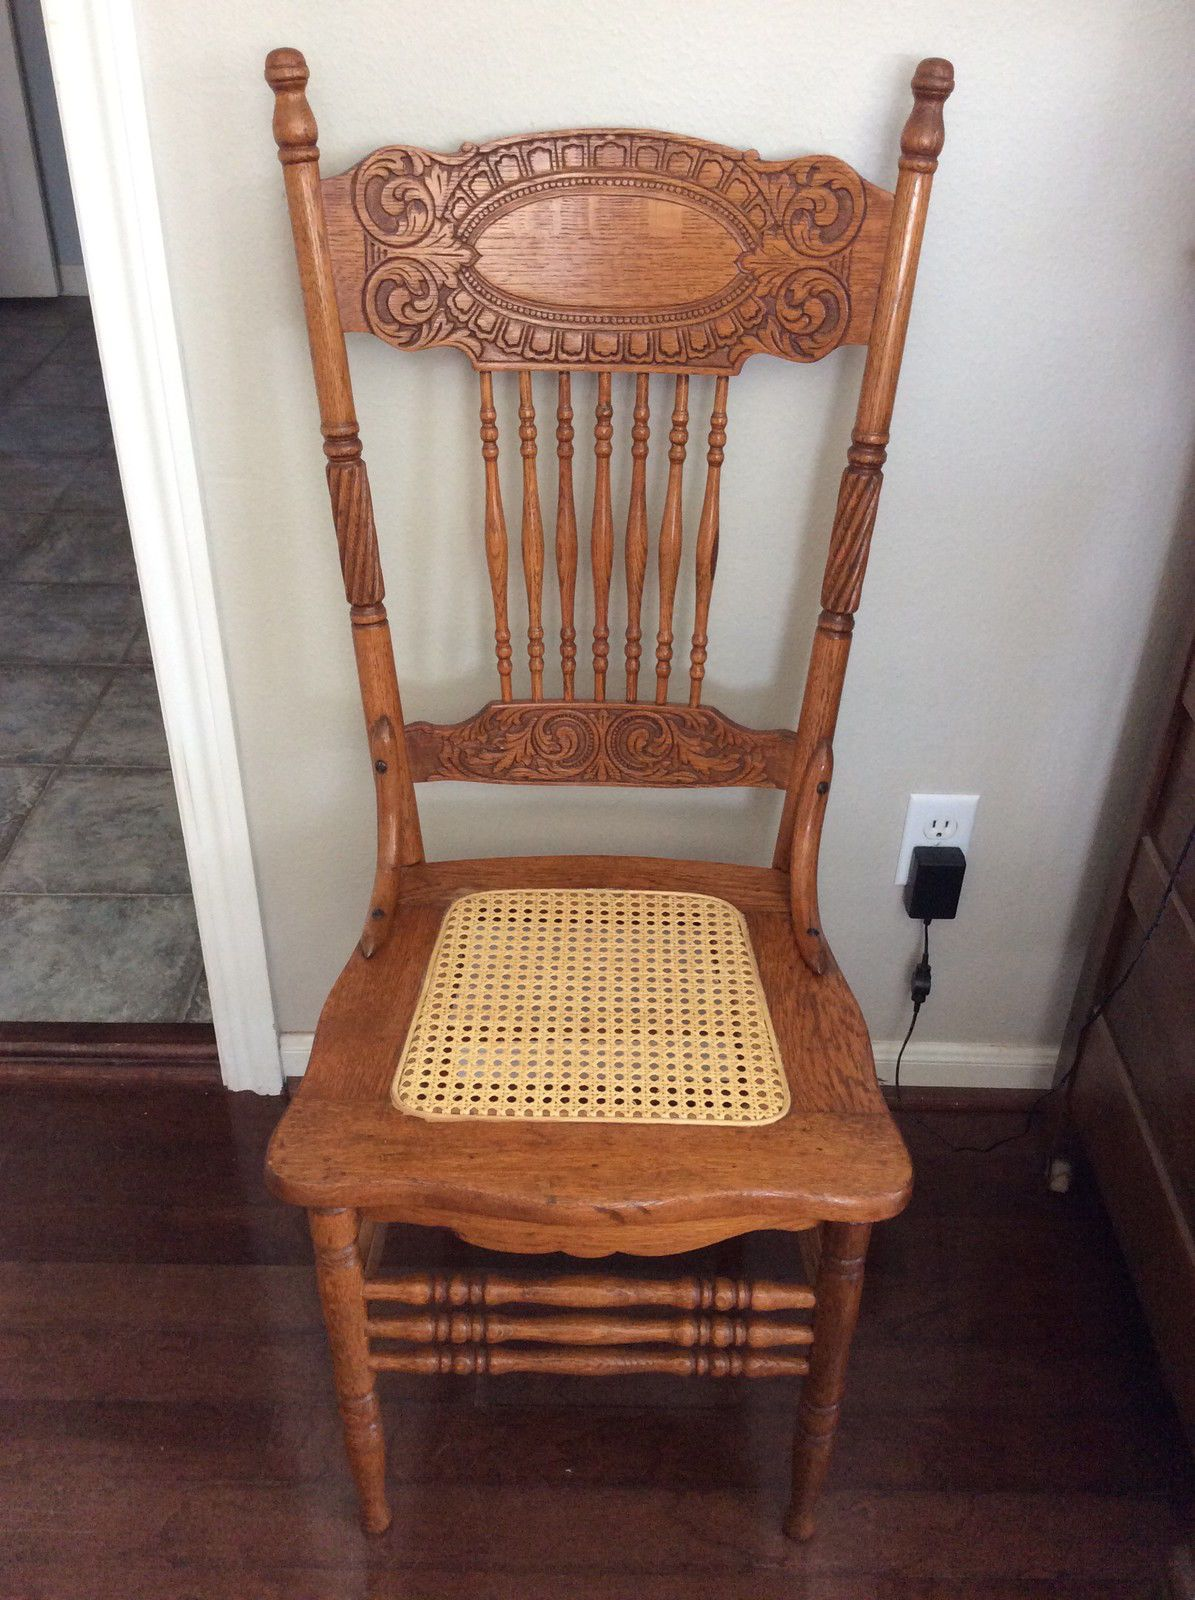 Antique Oak Larkin 1 Pressed Back Chairs Circa 1900 Cane Seat Matching Set  of 8 | eBay - Antique Oak Larkin #1 Pressed Back Chairs-Circa 1900-Cane Seat